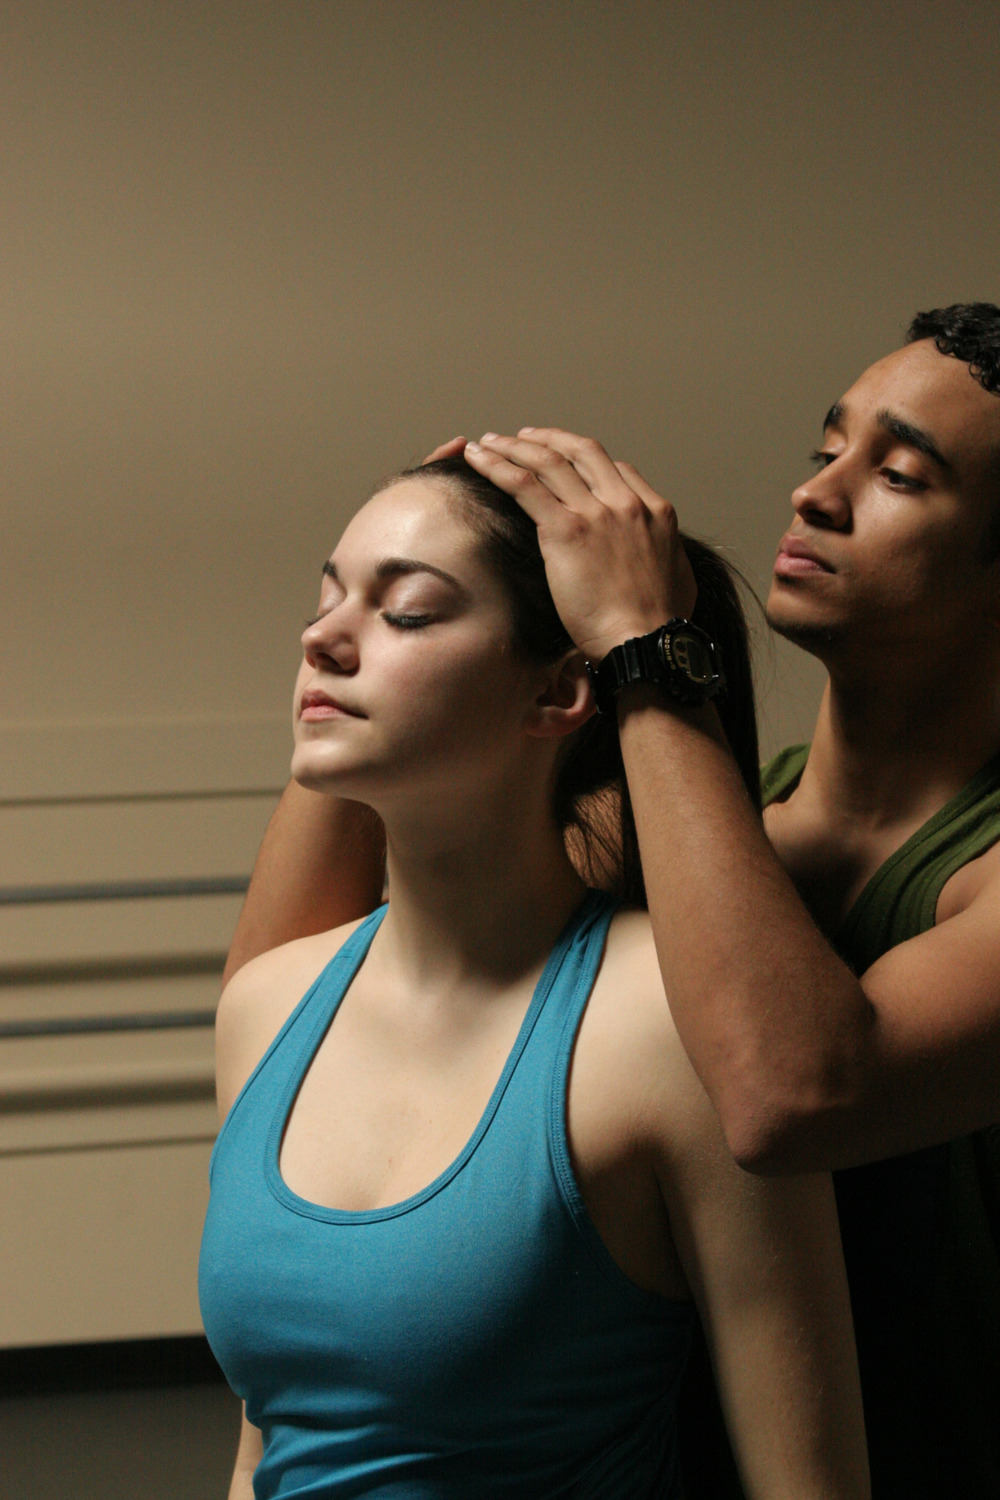 Dancers Emily Bernet and Dexter Green rehearse Joshua L. Peugh's White Day WORLD PREMIERE MAR 13-15 GET TICKETS: http://www.darkcirclescontemporarydance.com/